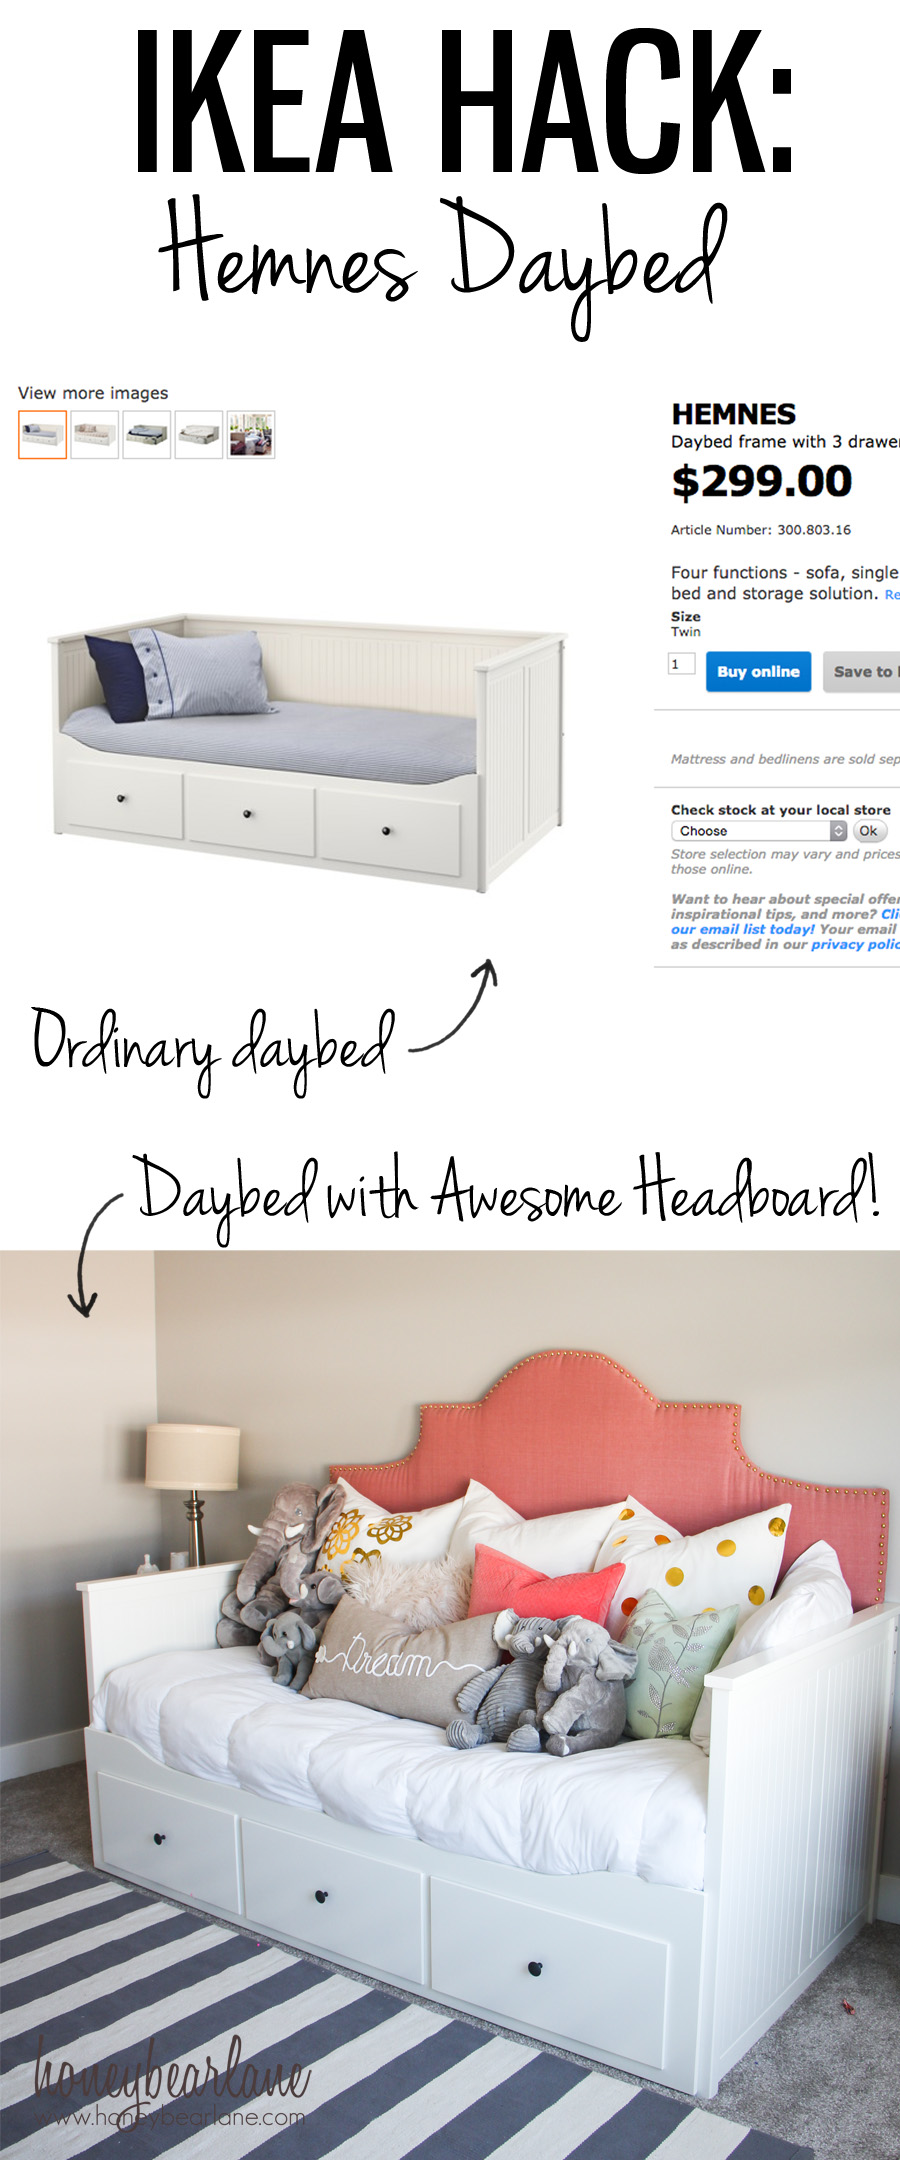 Hemnes daybed ikea hack honeybear lane for Ikea day bed